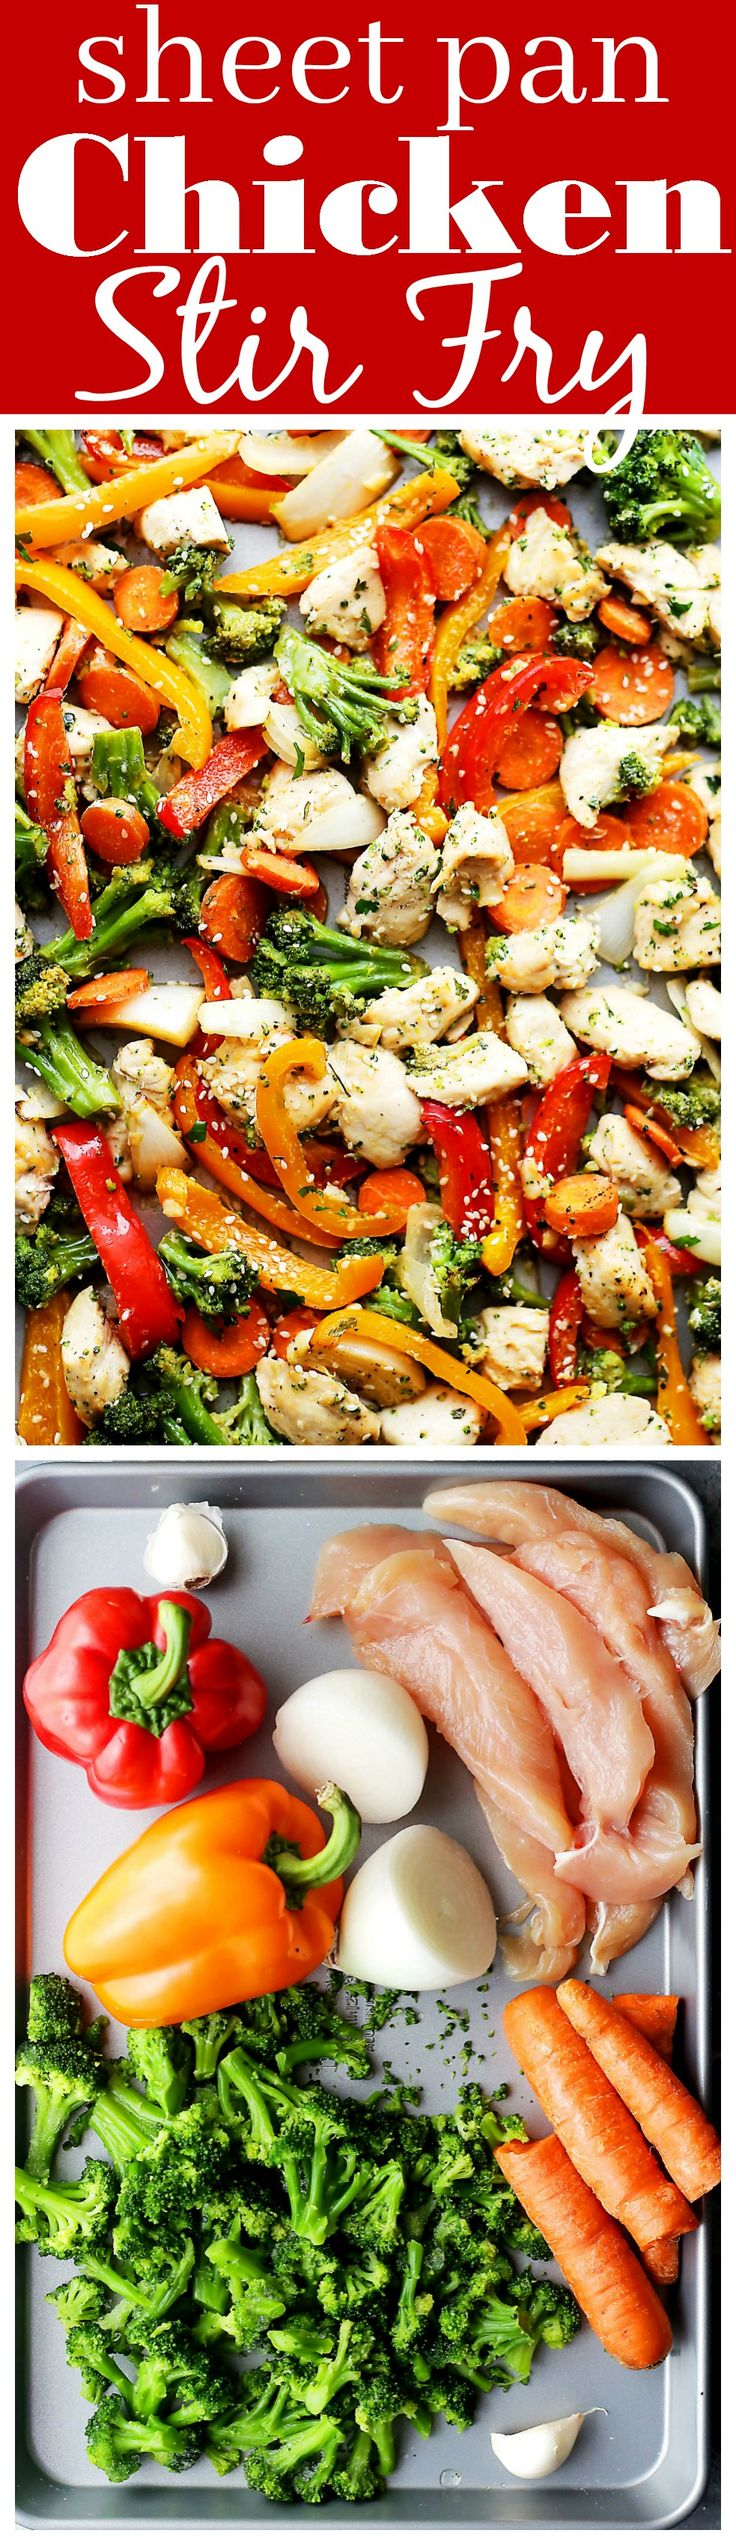 "Sheet Pan Chicken ""Stir Fry"" - Just one pan and 30 minutes is all you will need to make this amazing meal! Skip the wok and make this quick and healthy chicken stir fry dinner in the oven!:"